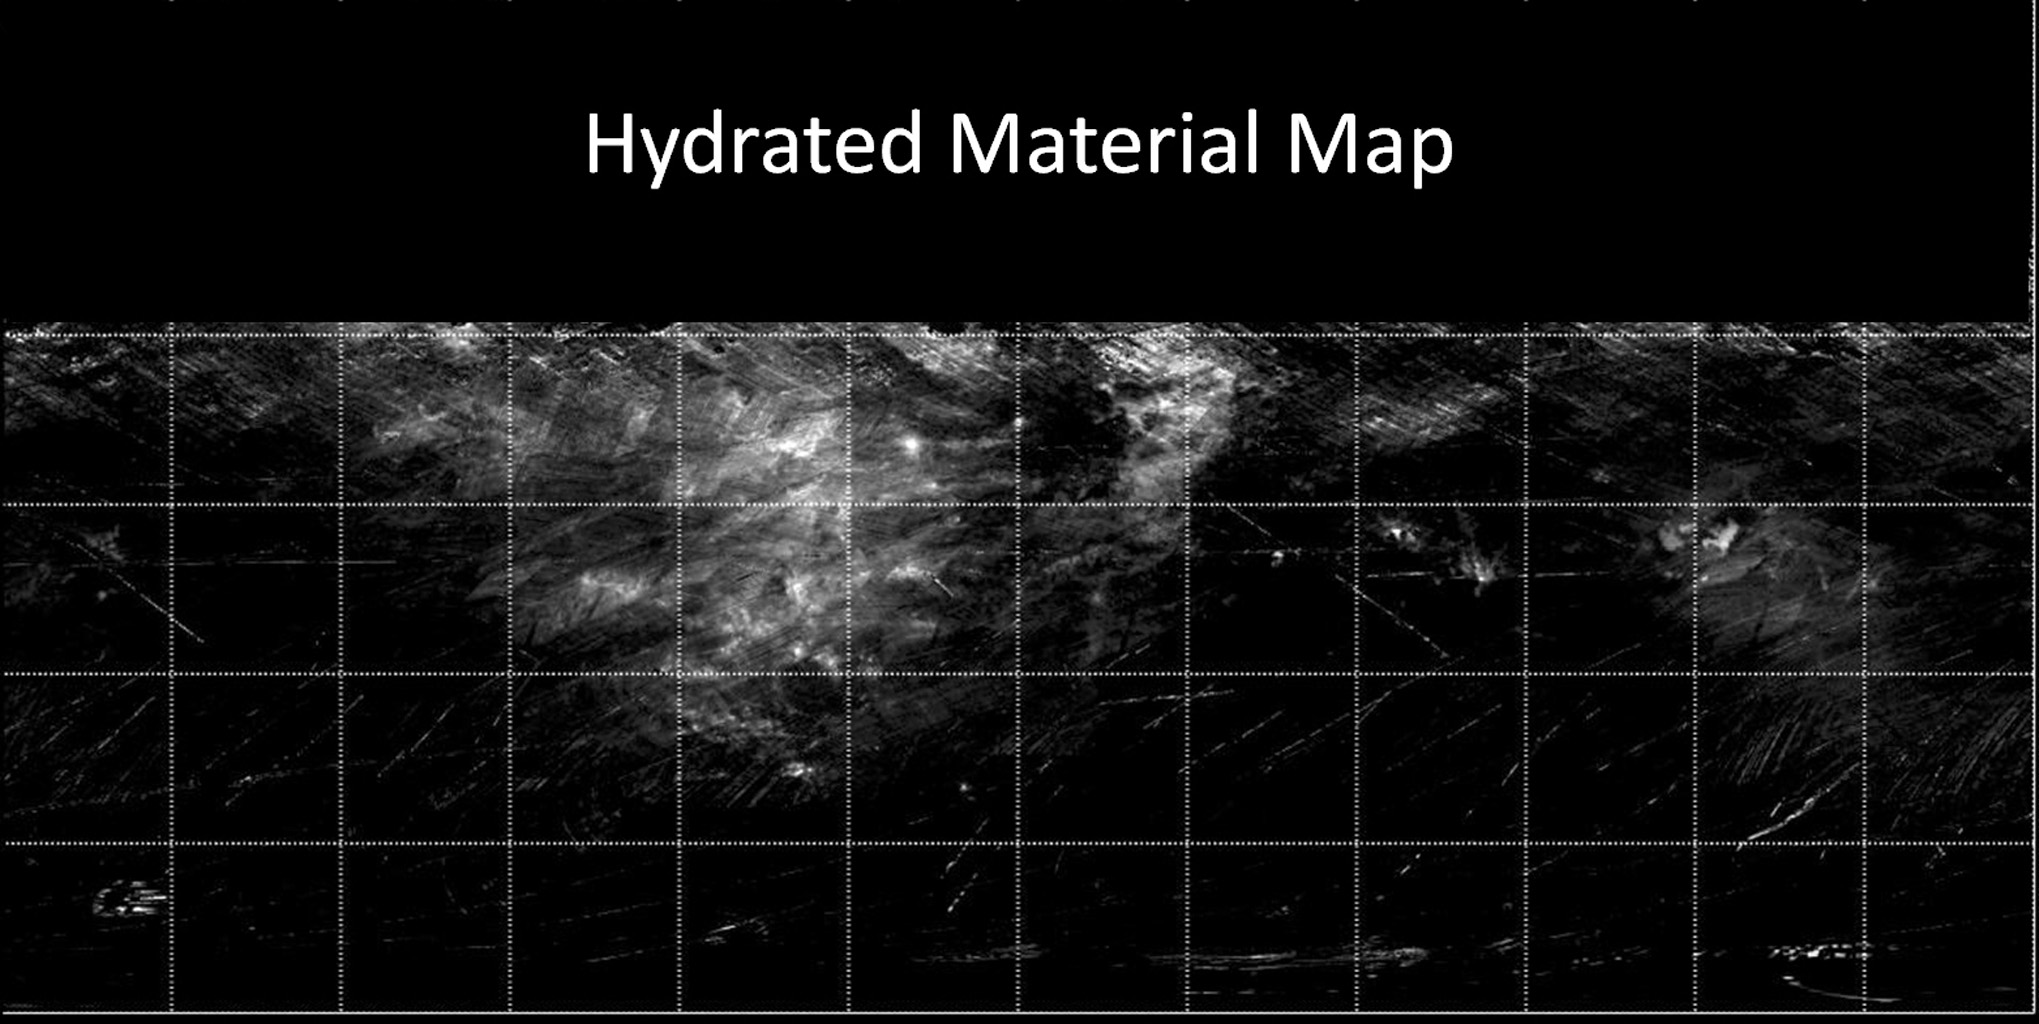 Map of Hydrated Minerals on Vesta